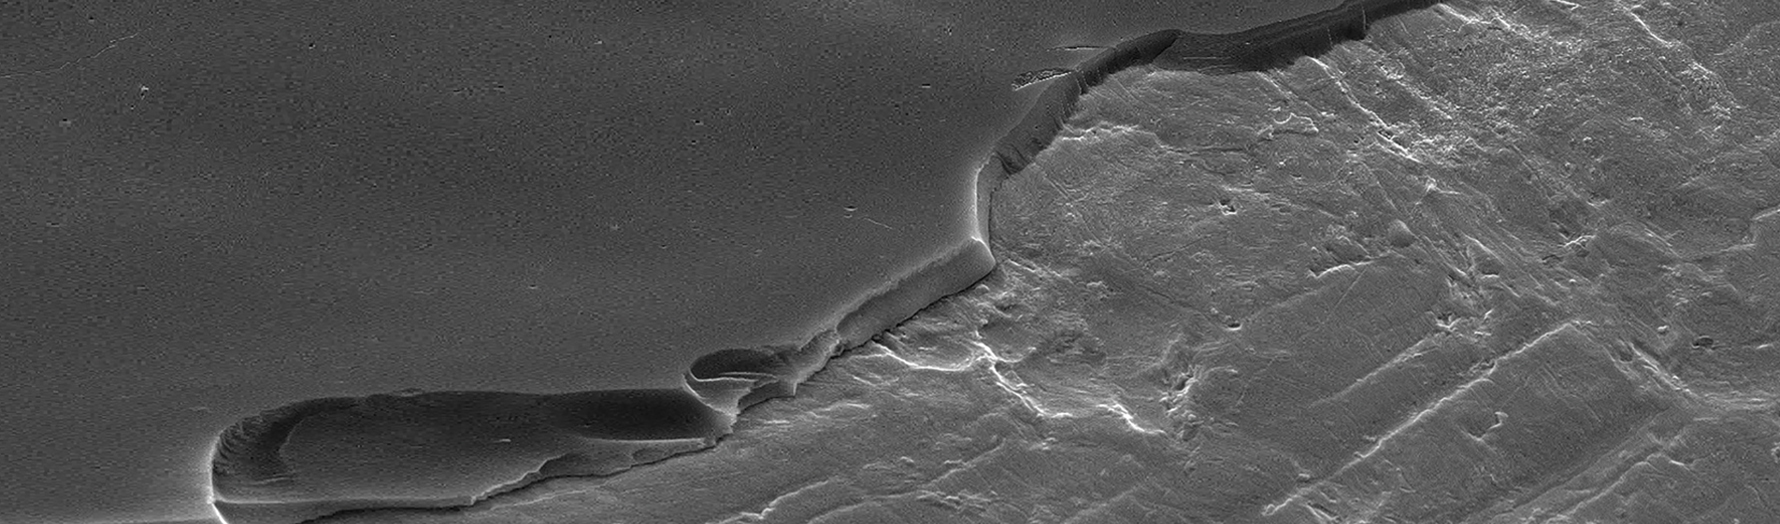 Touchpoint Shield coating - magnified x1100 -cropped